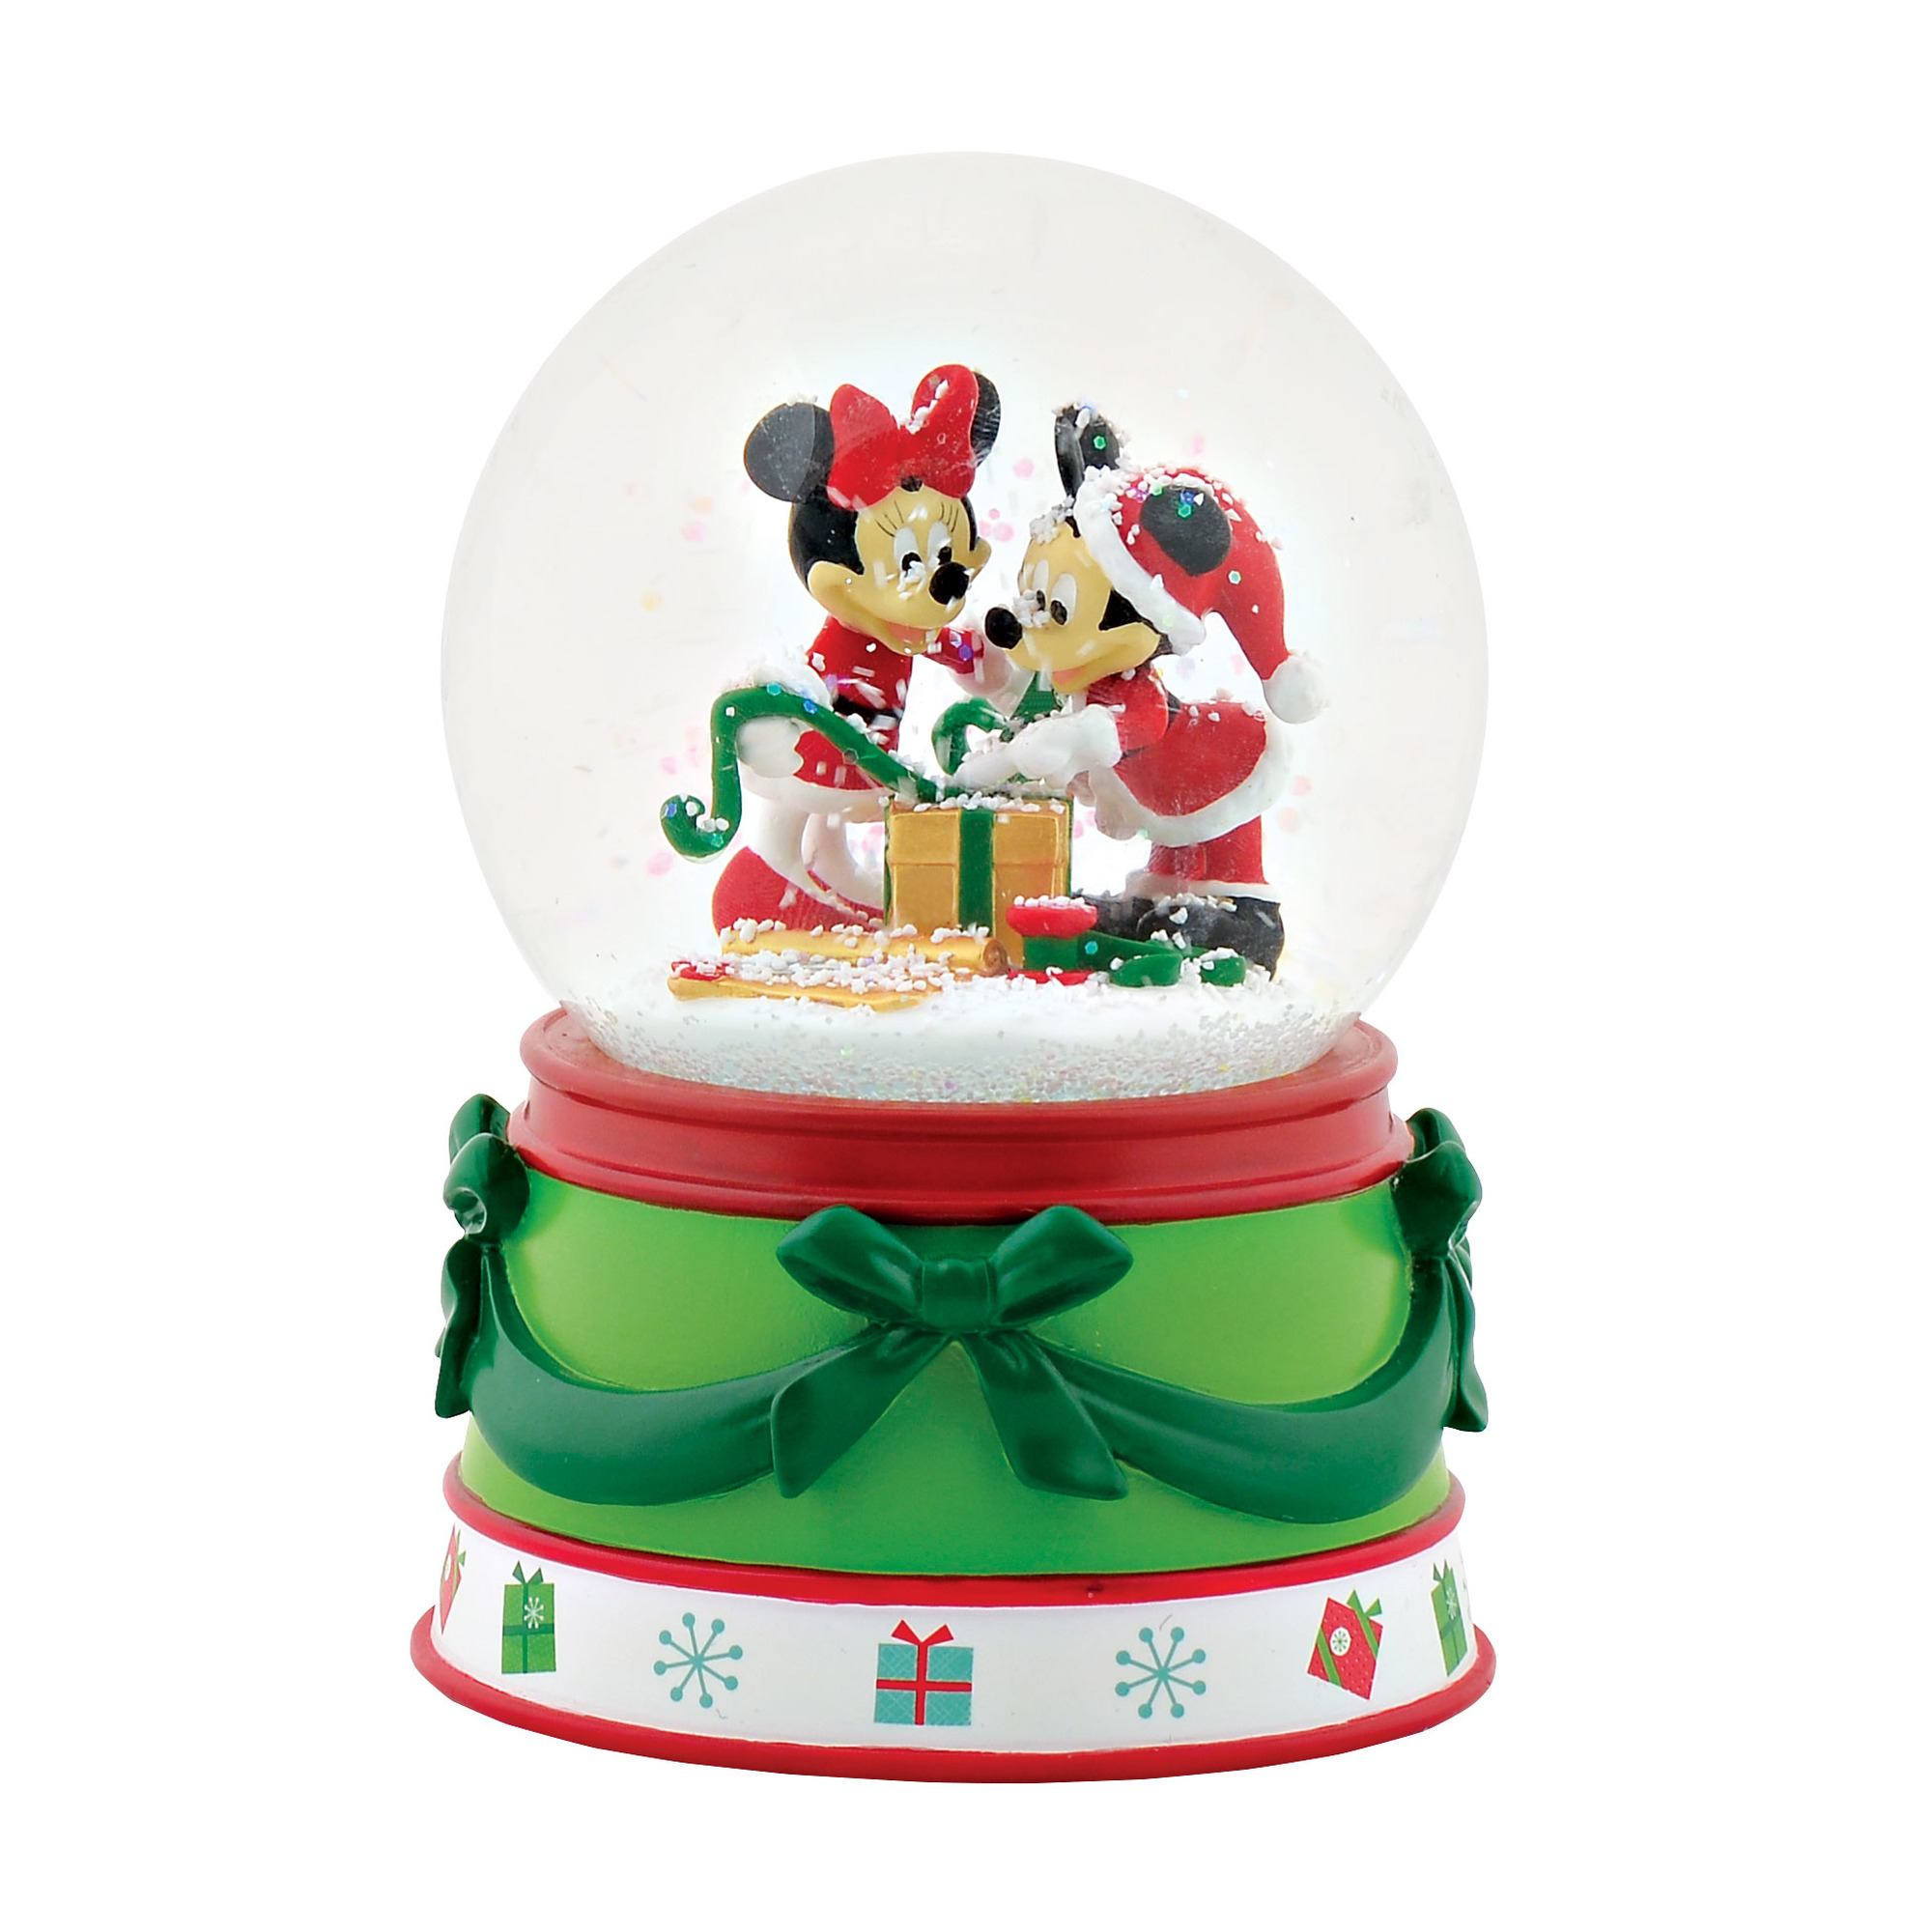 Department 56 Disney Mickey & Minnie Mouse Snow Globe